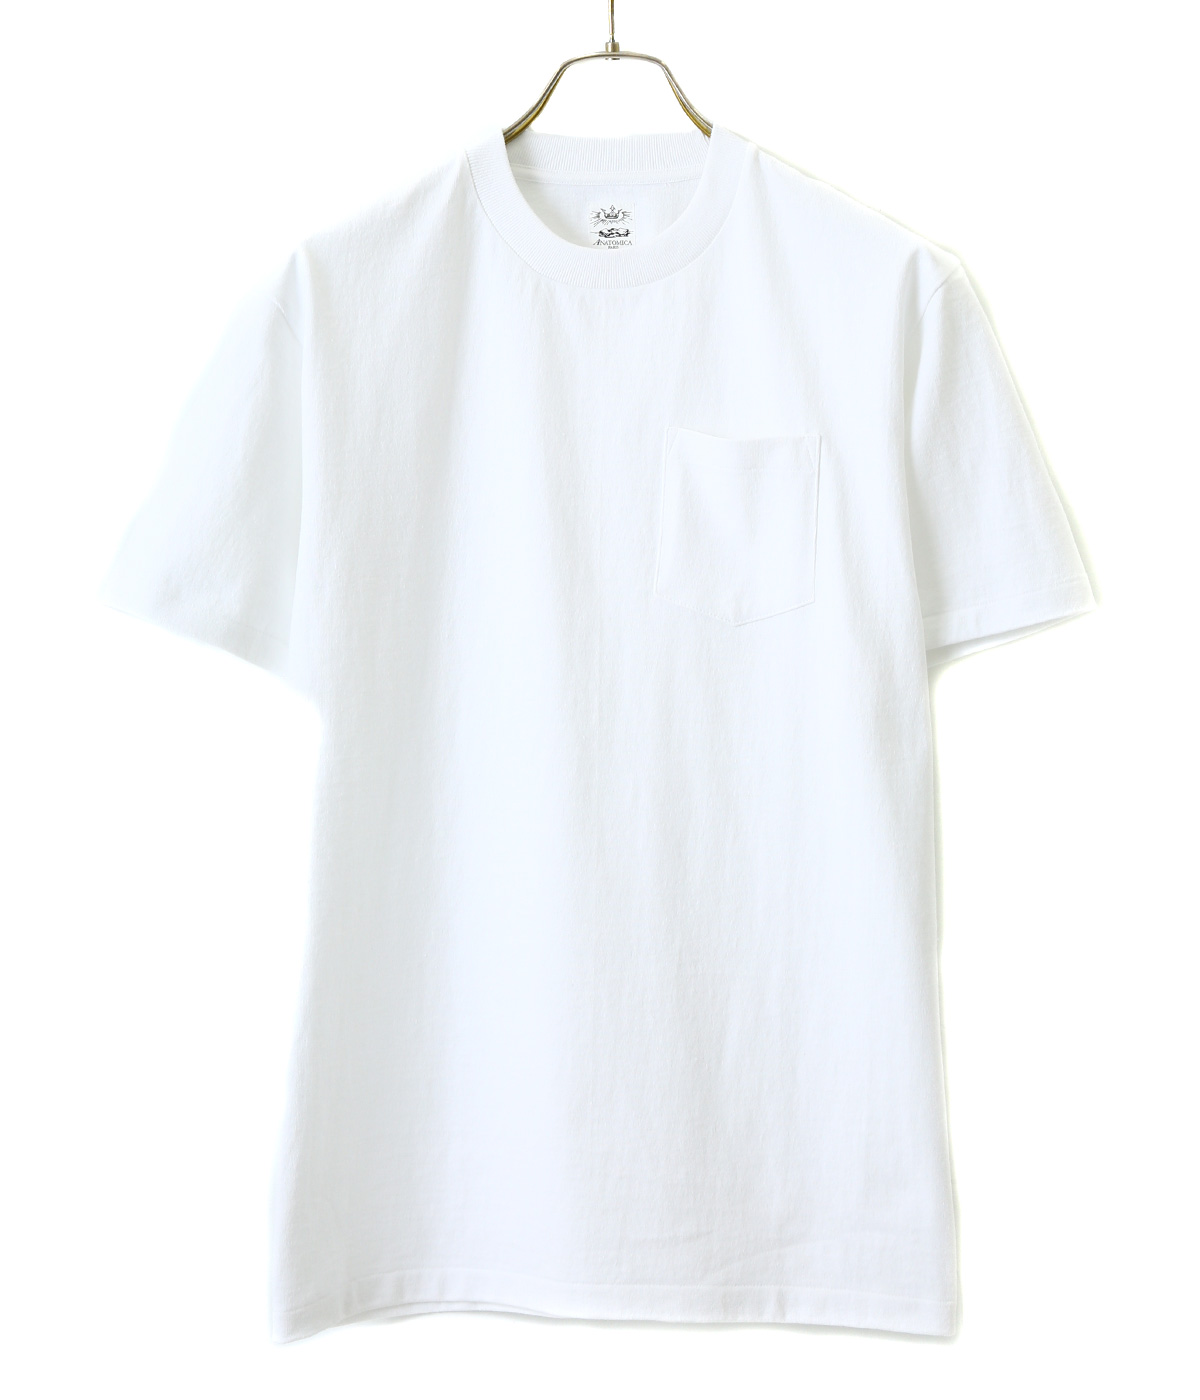 【予約】POCKET TEE S/S made of USA yarn